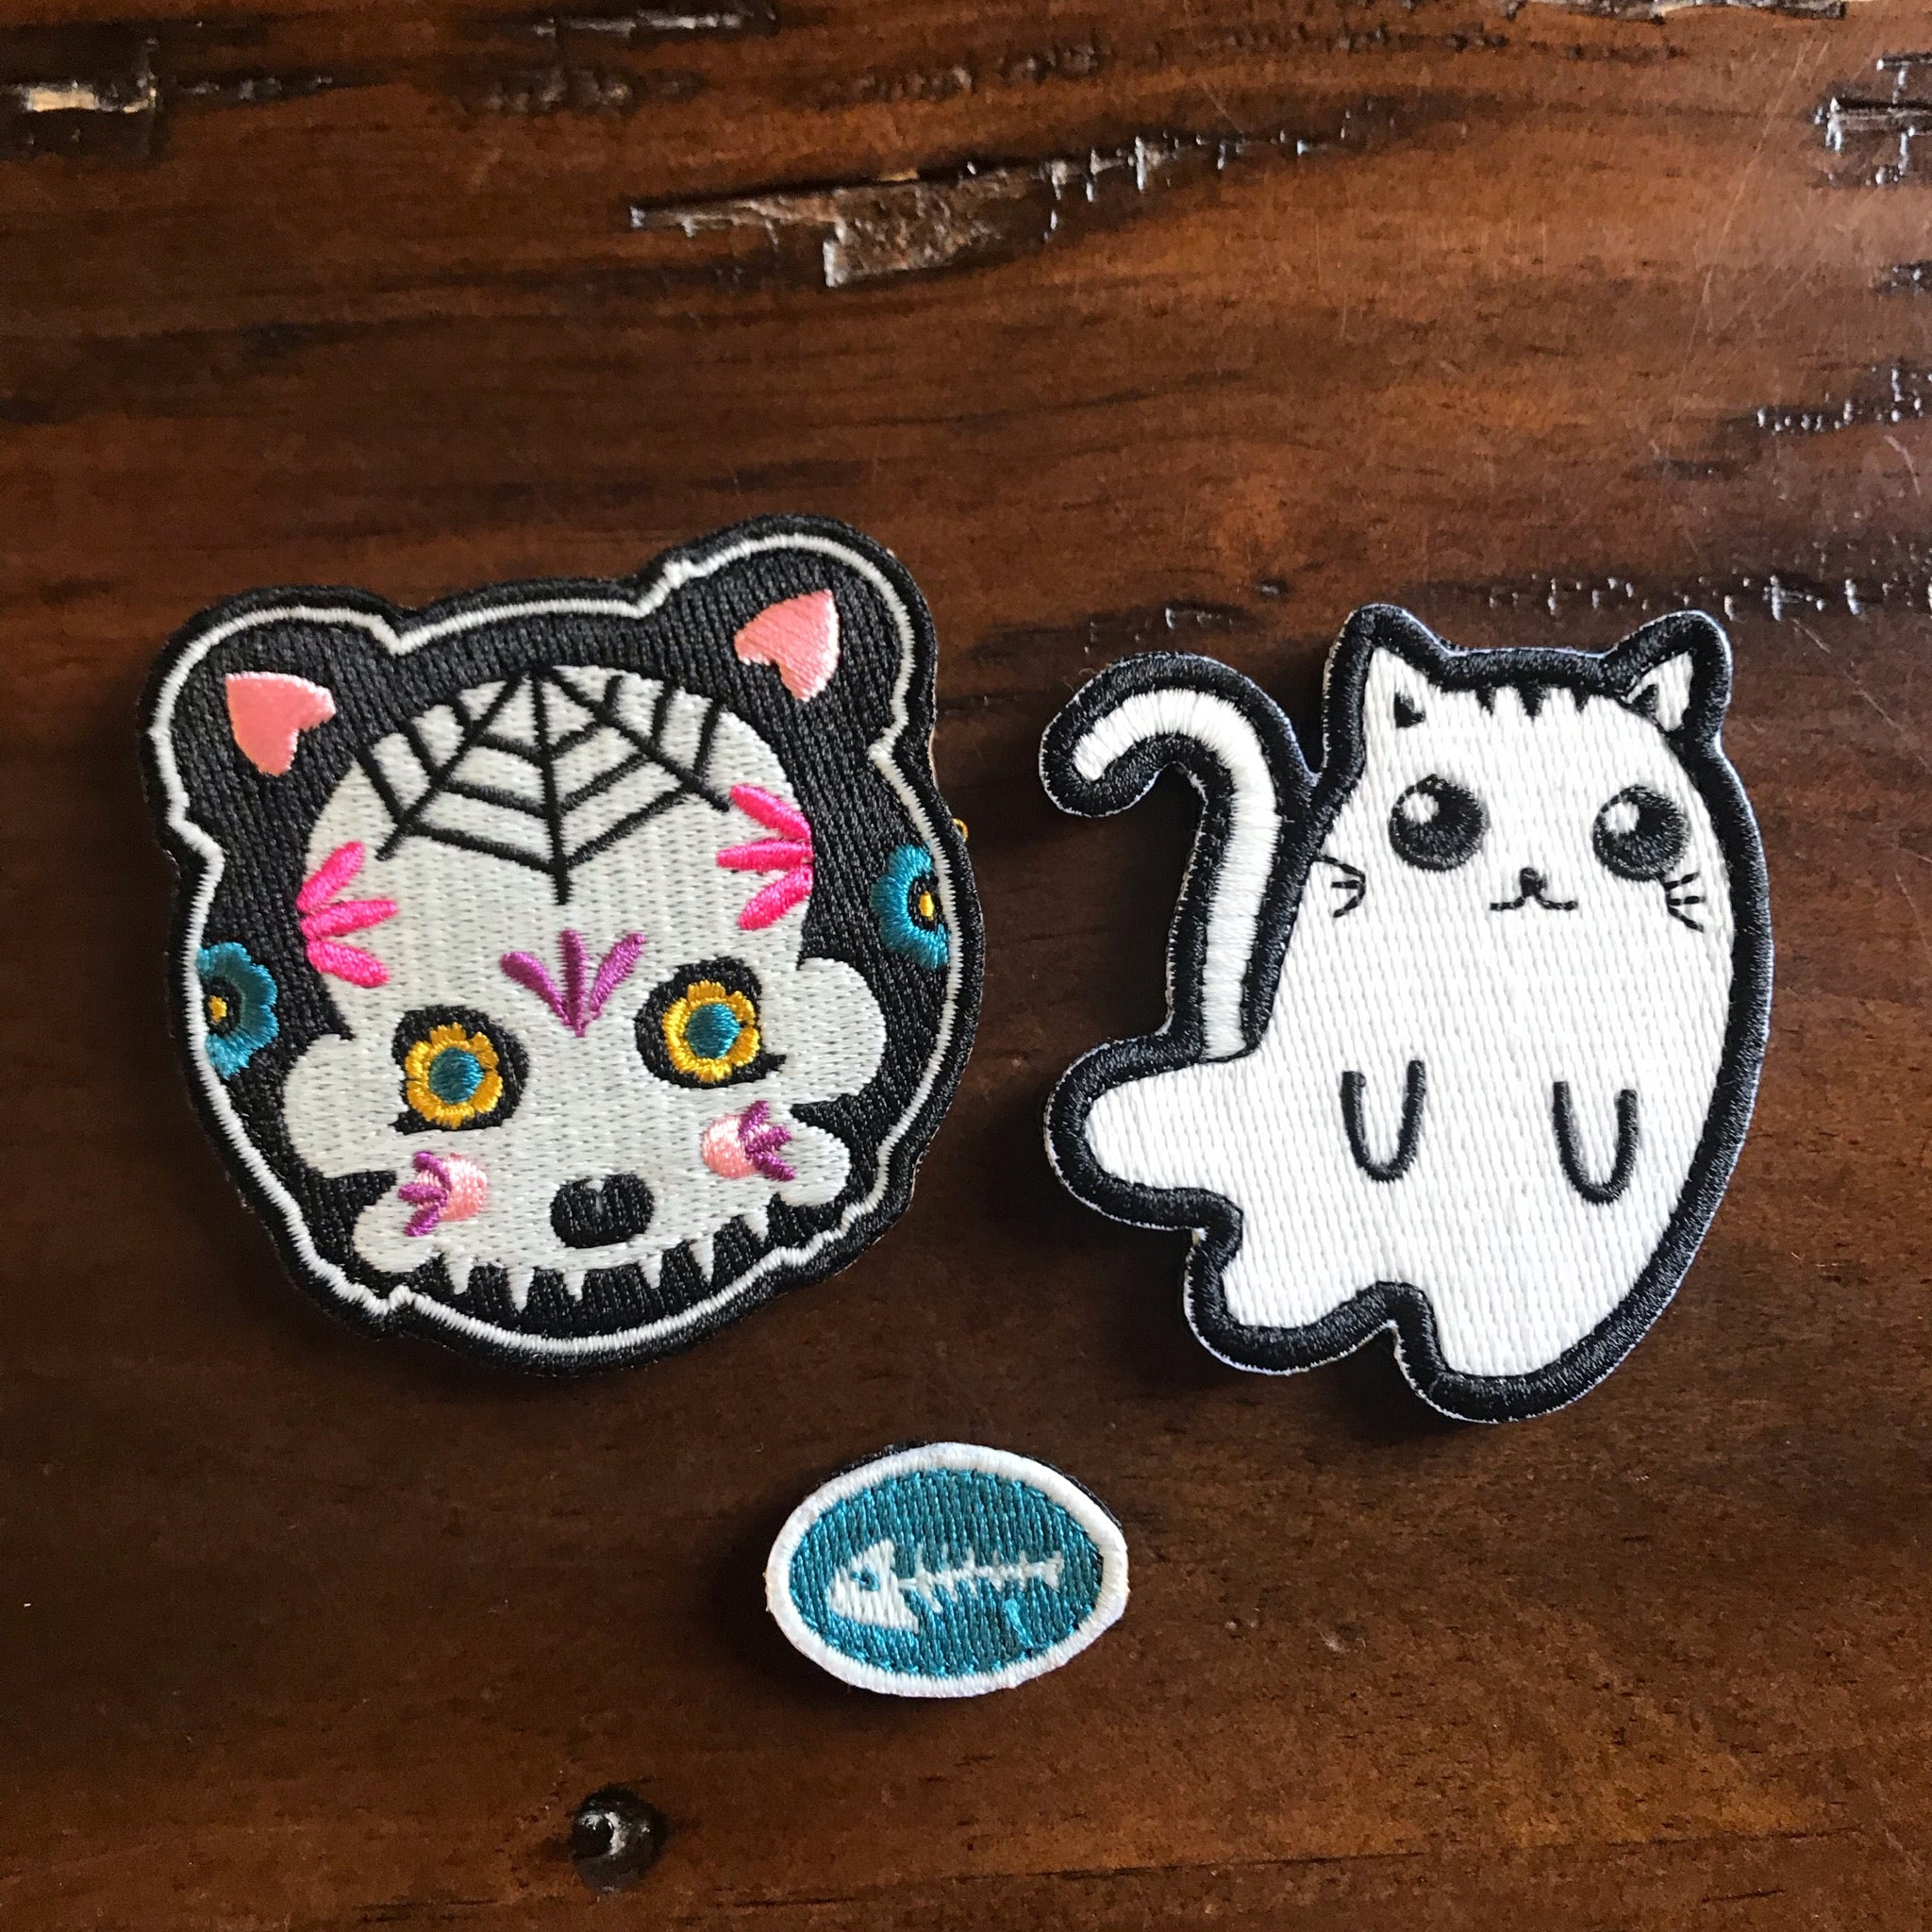 Spooky Cute Halloween Badge Set